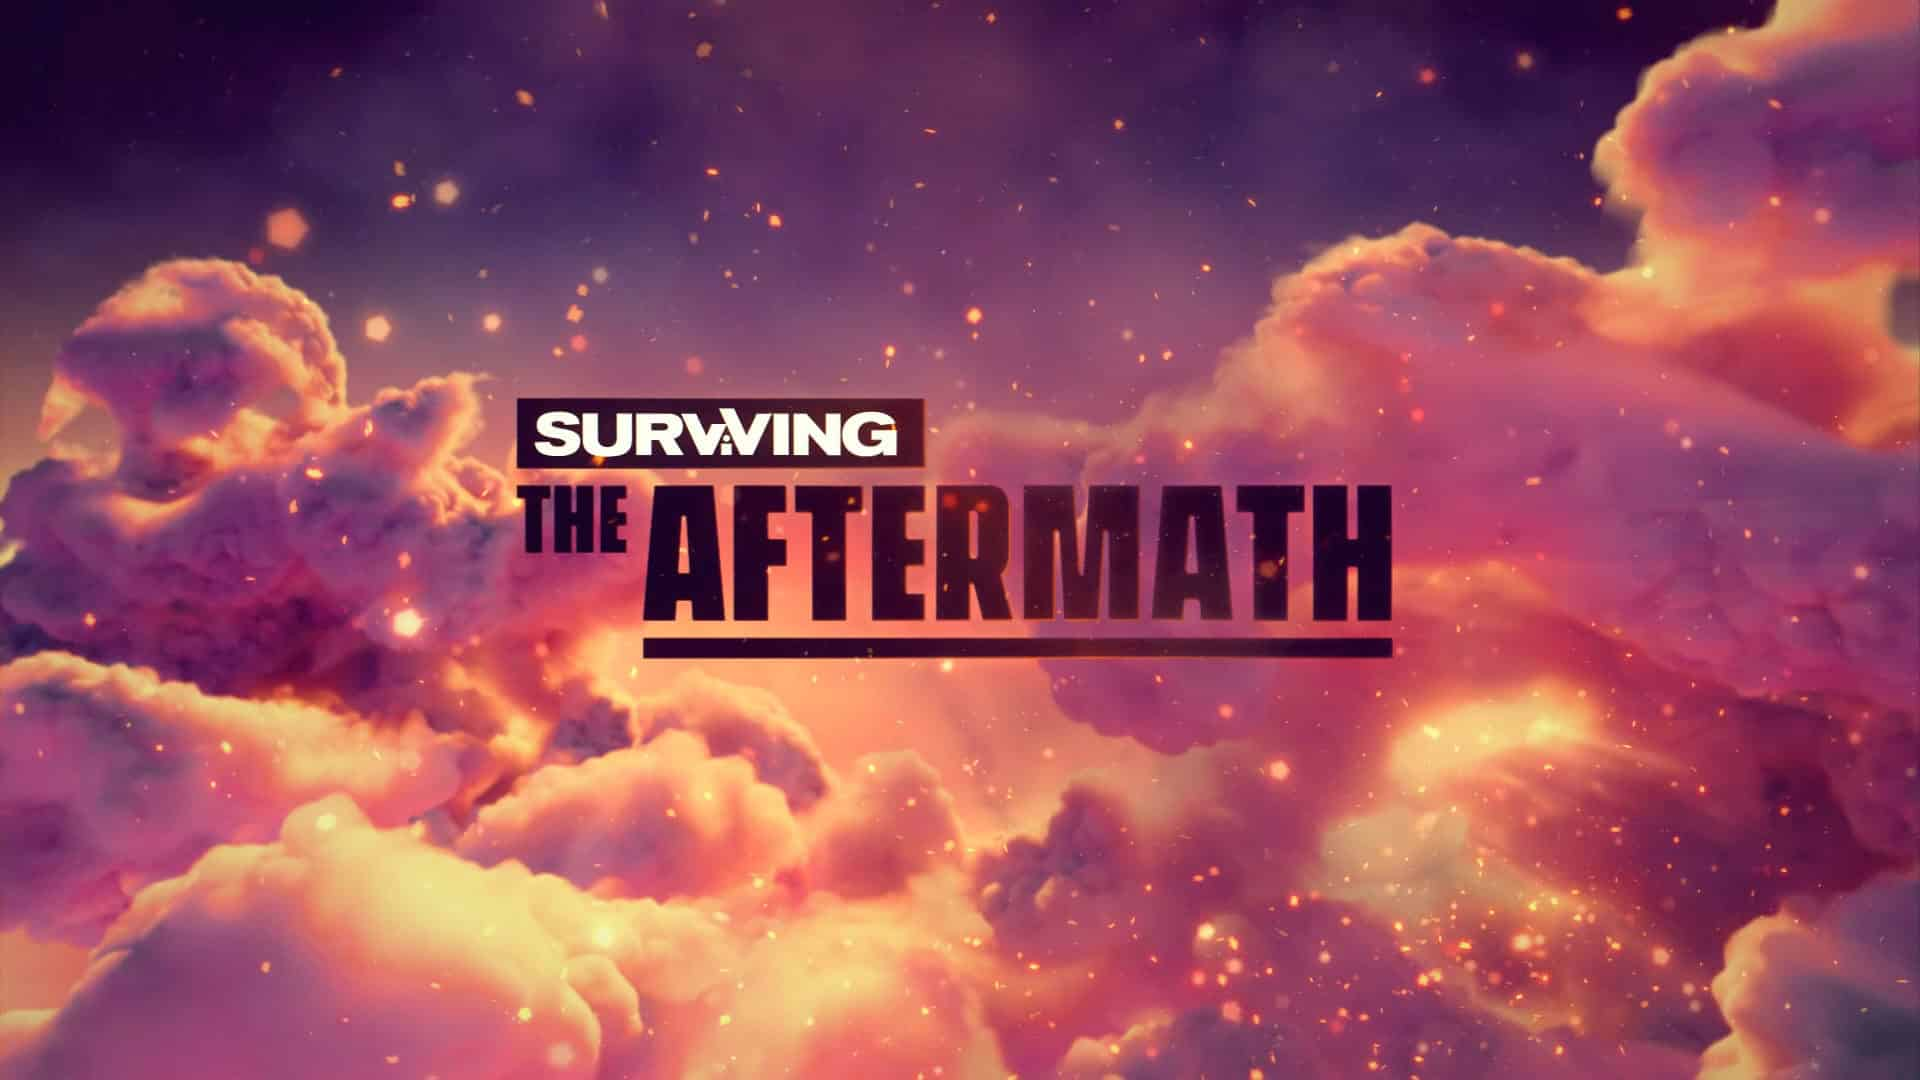 Surviving the Aftermath Teaser3429 babt